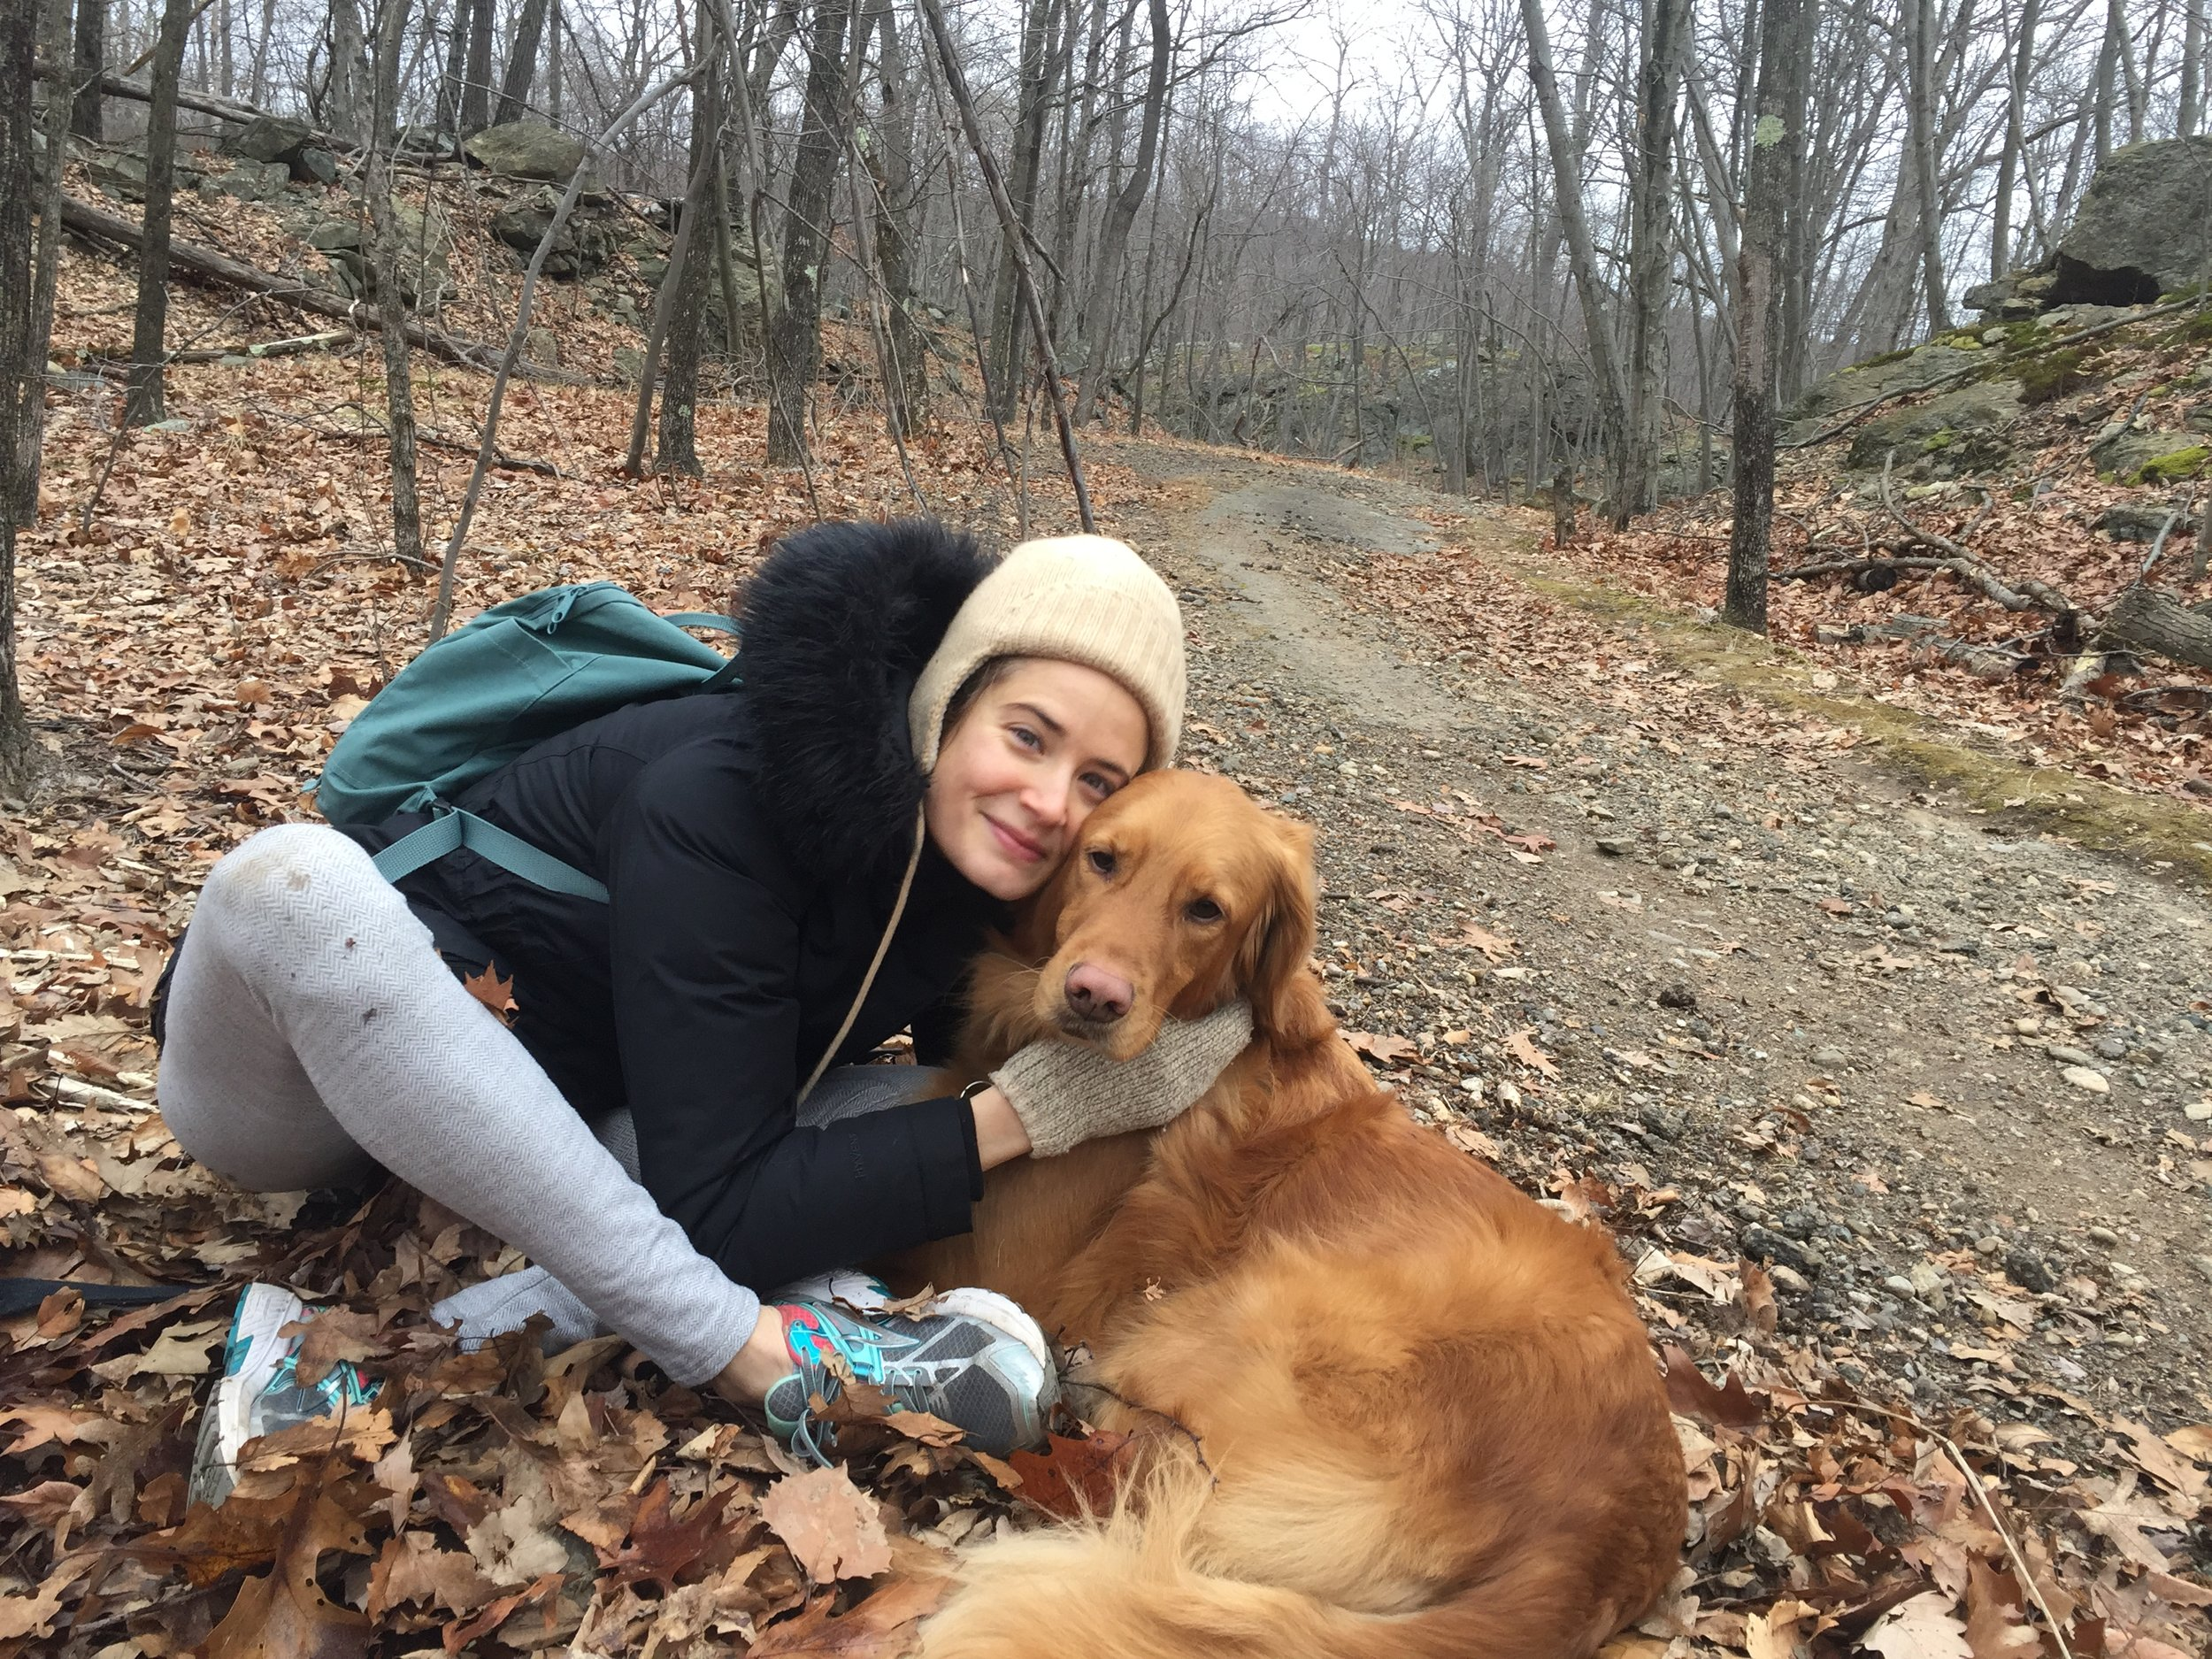 Another form of celebration: Going into the woods with an adorable golden retriever and exploring :)